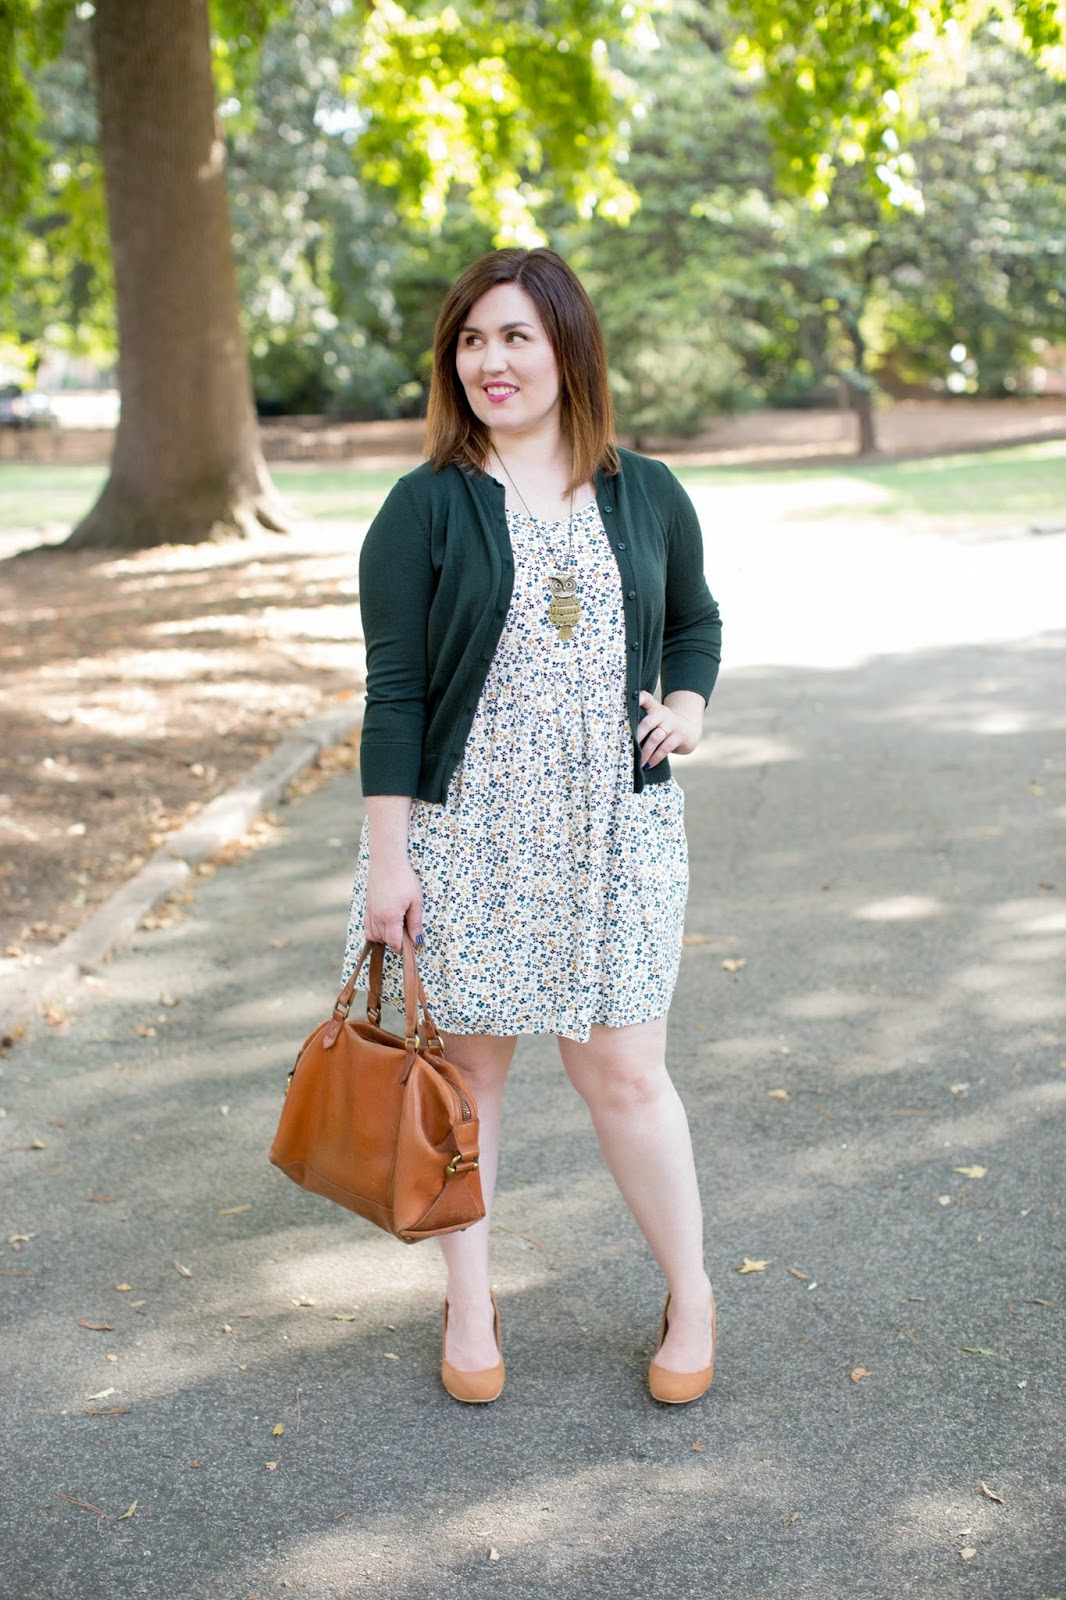 Rebecca Lately Old Navy Floral Dress Loft Cardigan Owl Necklace Madwell Kensington Forever 21 Heels